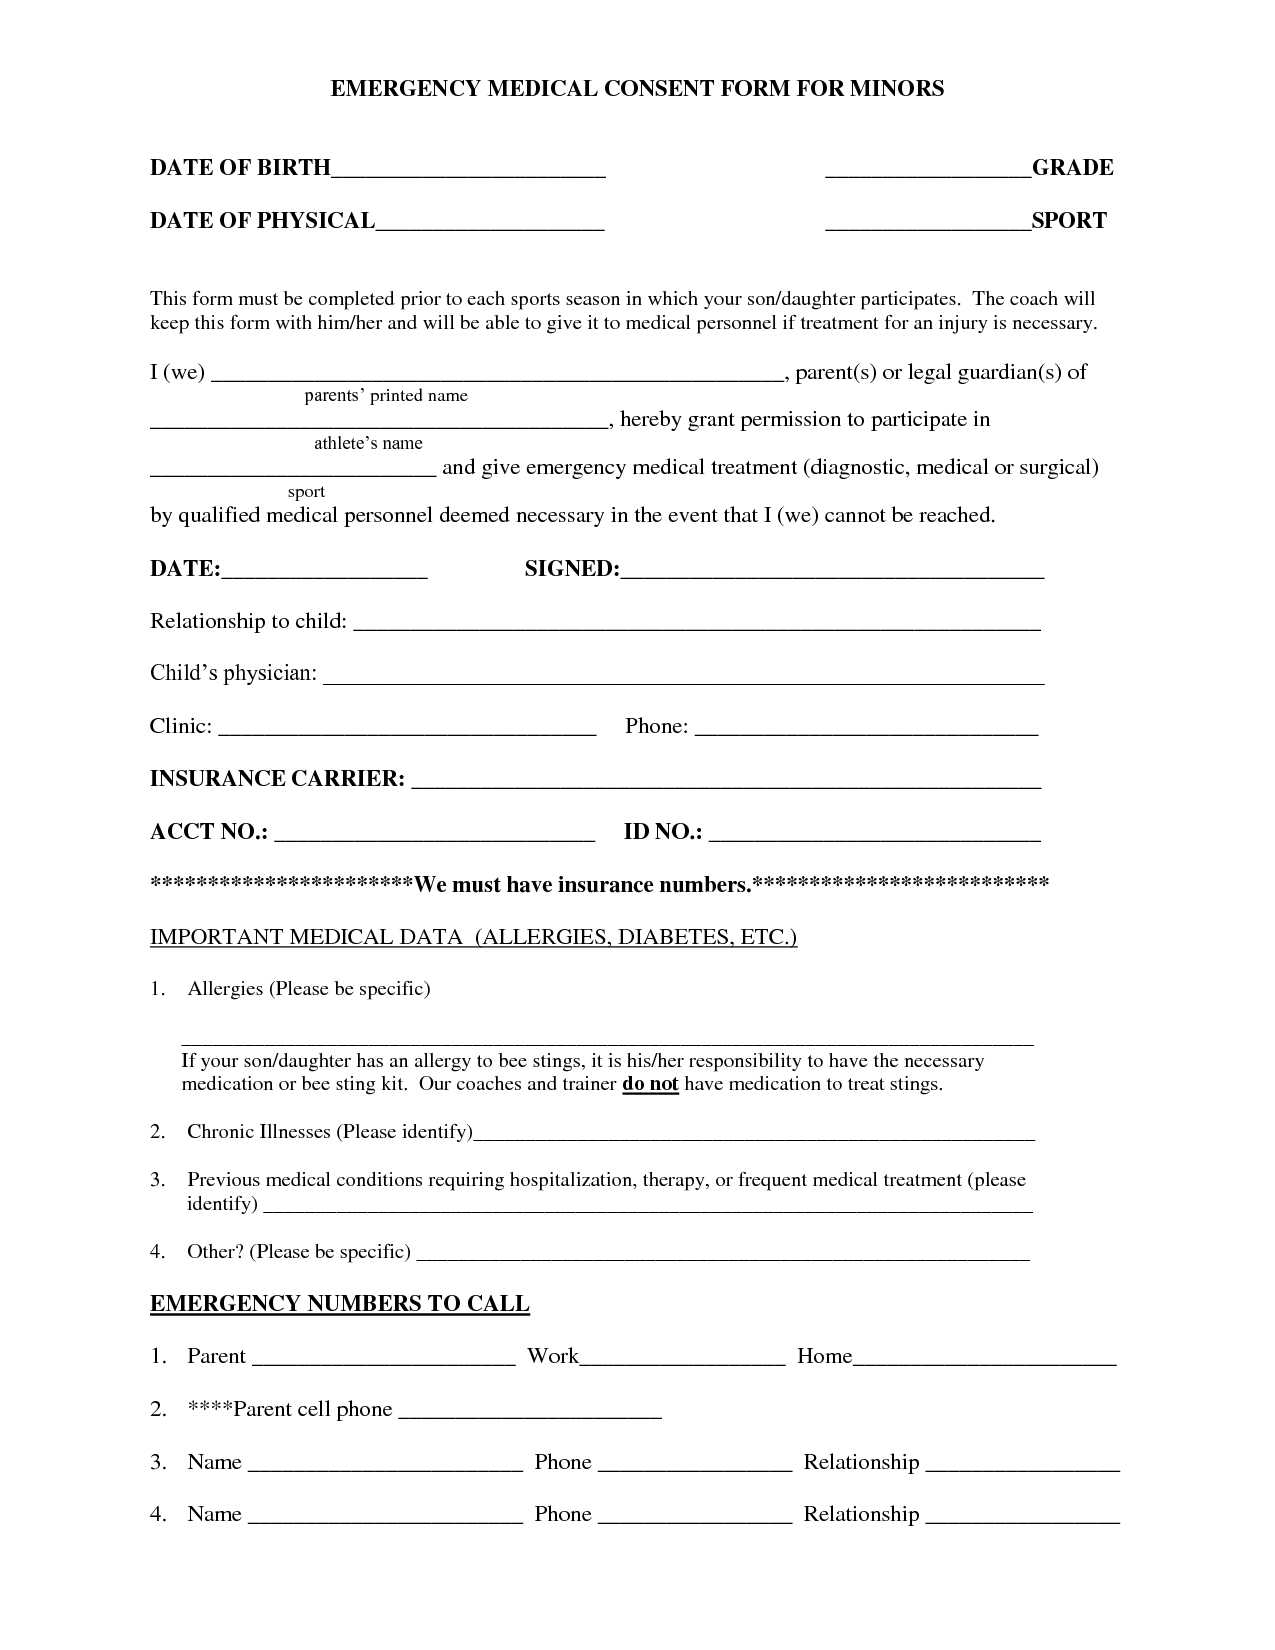 Medical Authorization Form For Children Images - Medical - Free Printable Child Medical Consent Form